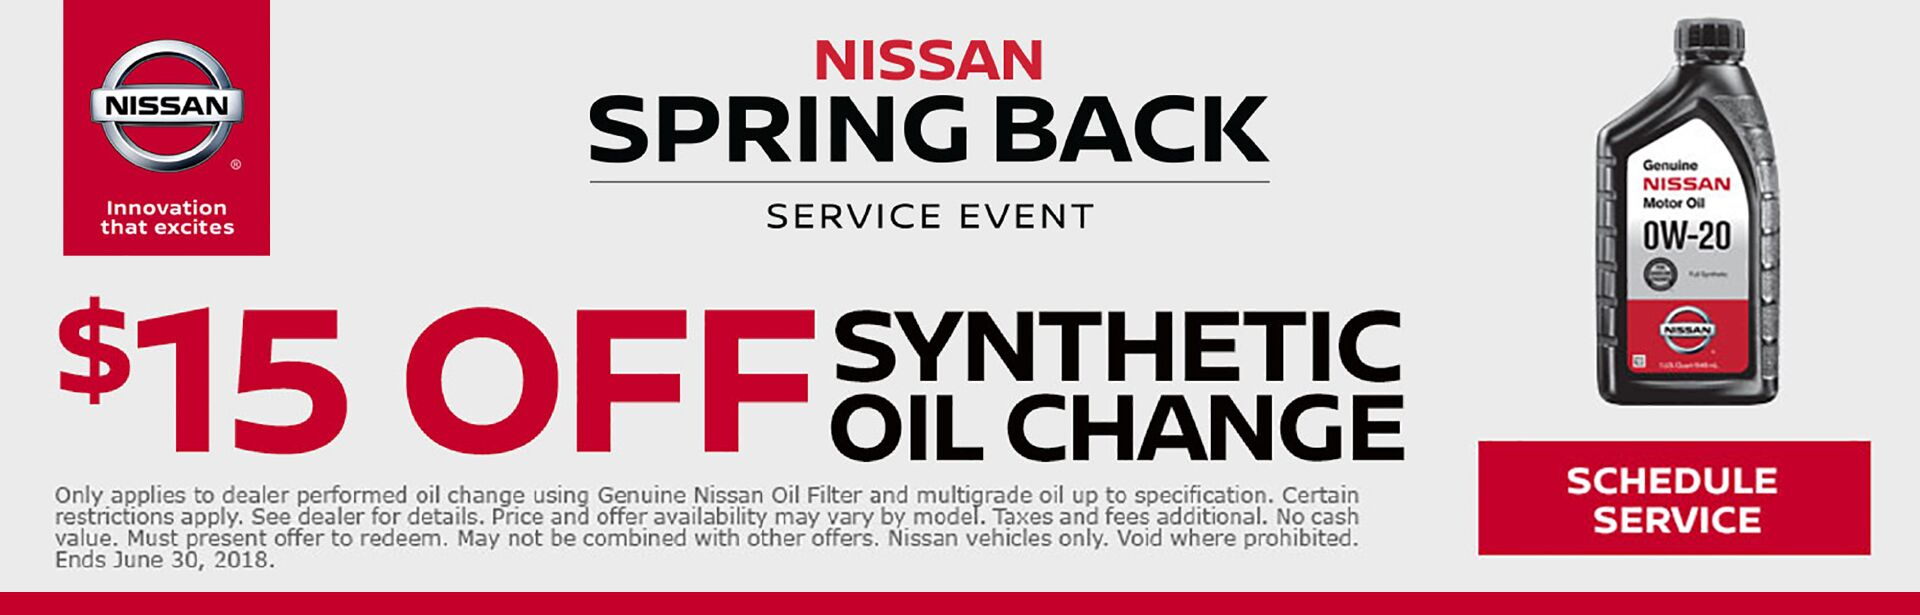 Nissan Spring Back Synthetic Oil Change